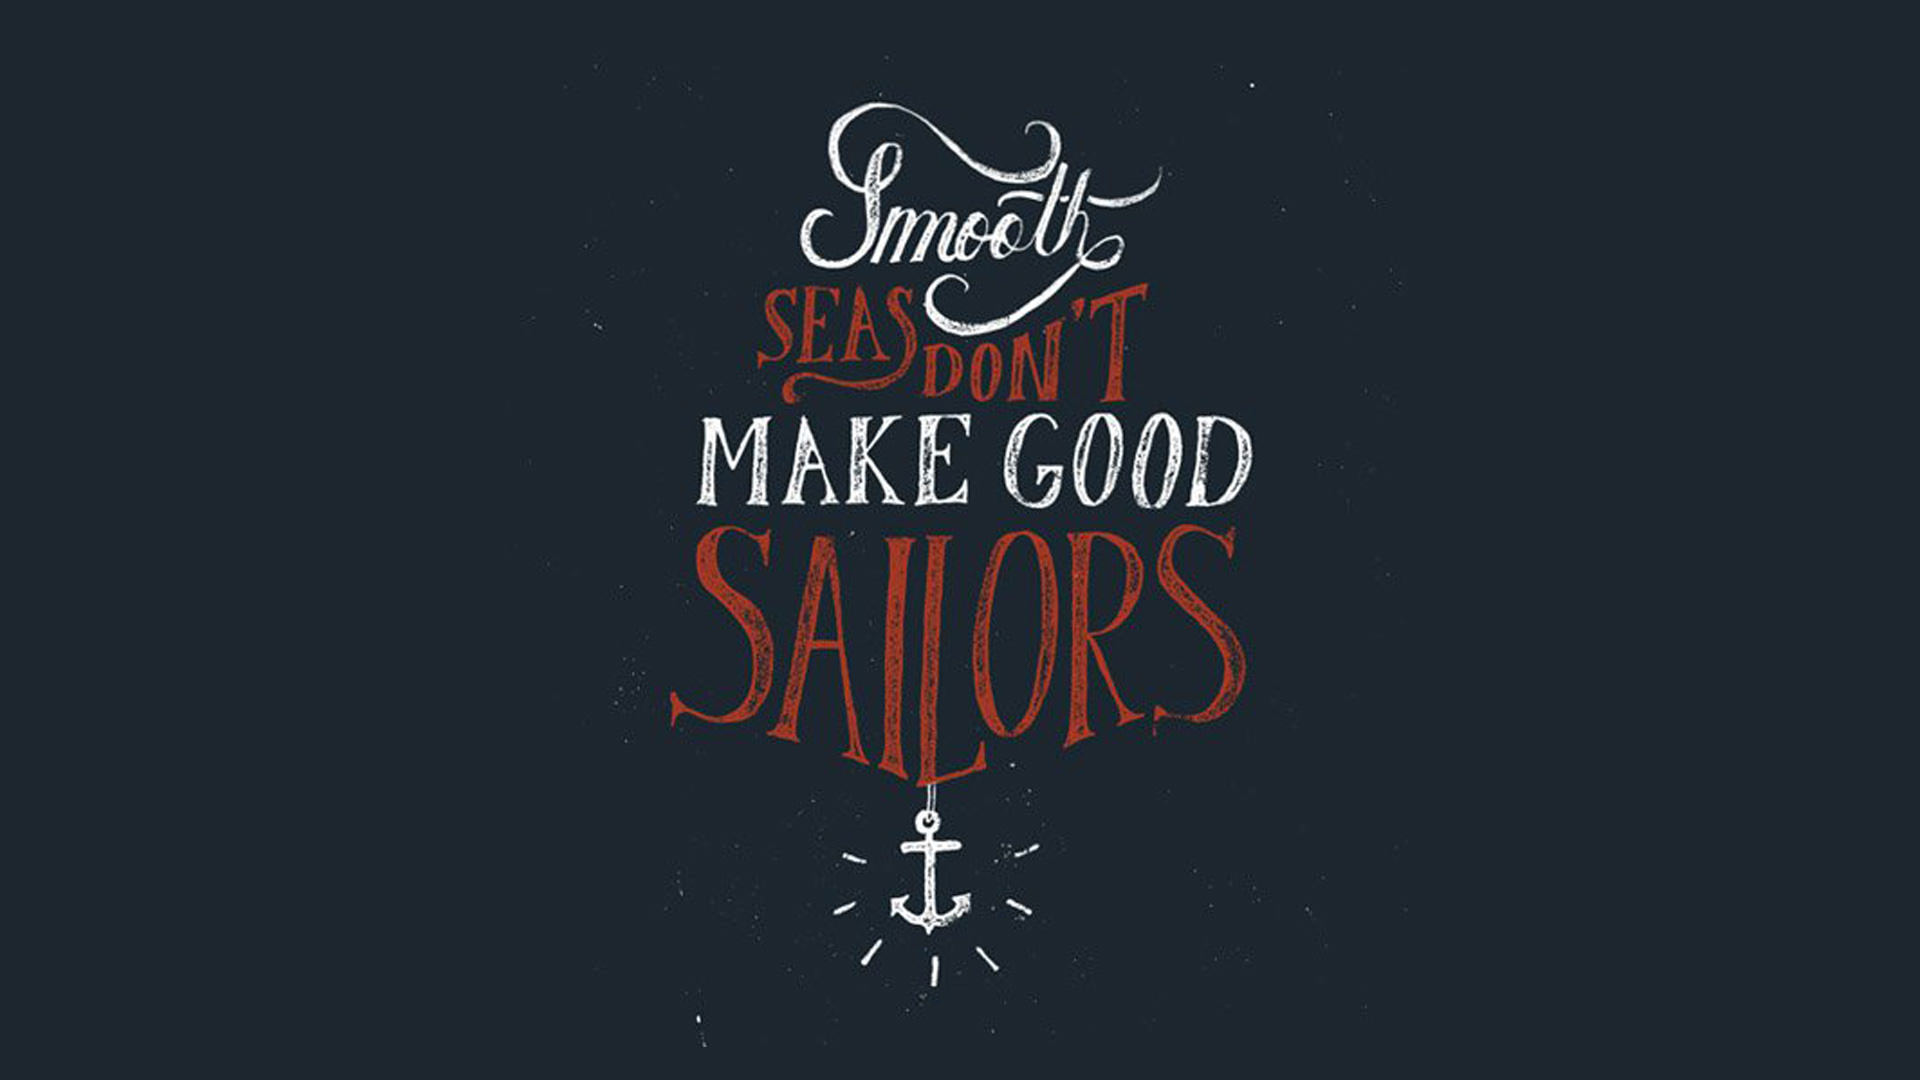 Quotes About Sailing And Life Stunning 35 Famous Positive Quotes About Life Wisdom And Successfamous